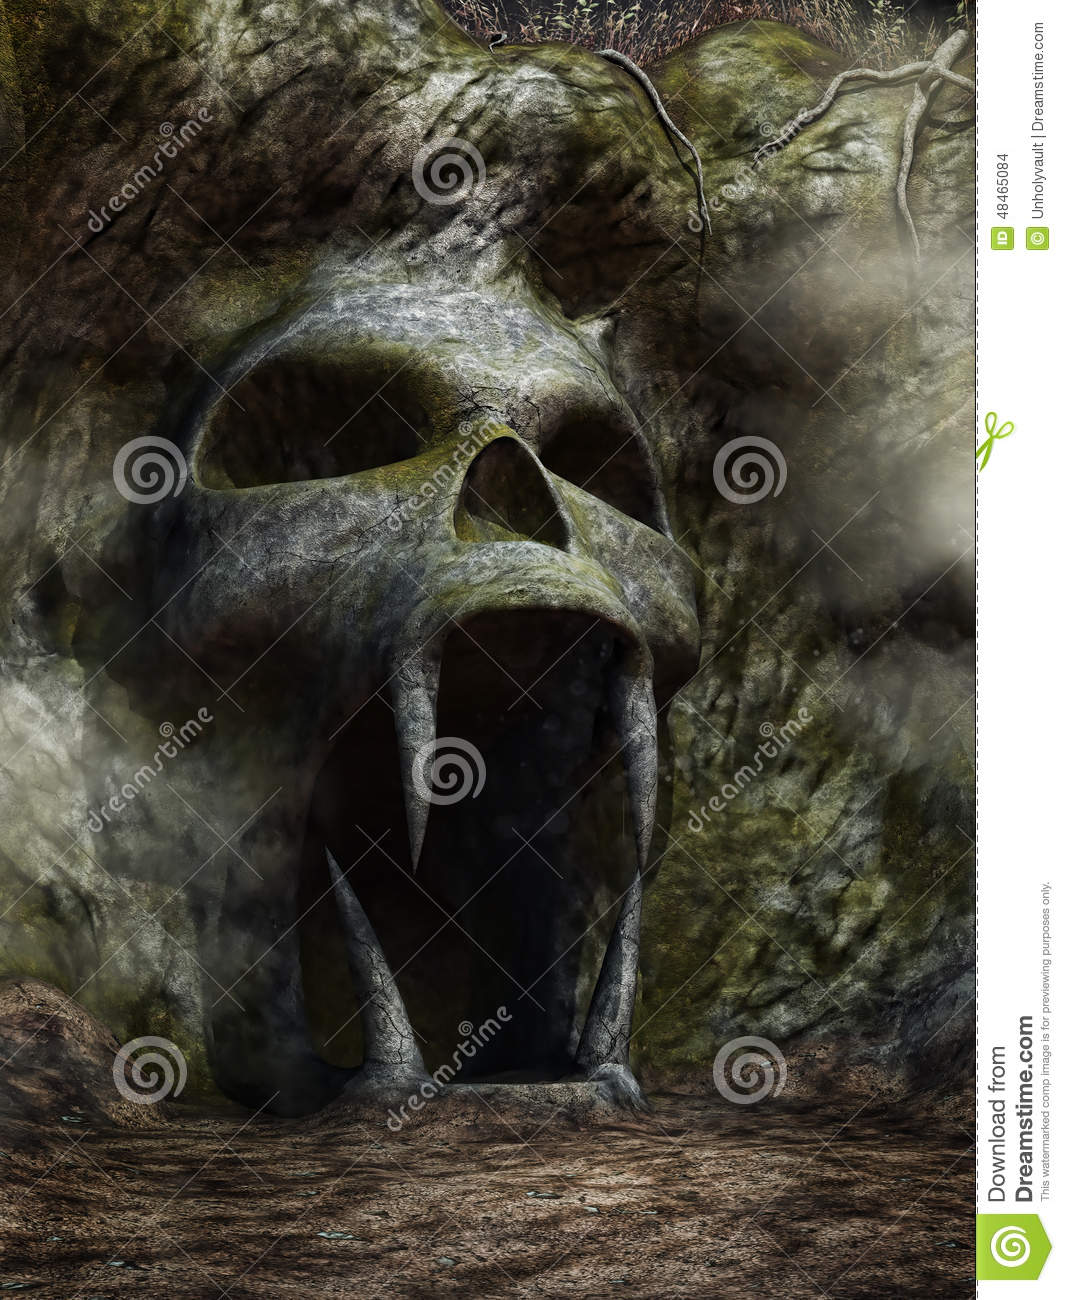 Spooky Cave Entrance Stock Illustration - Image: 48465084